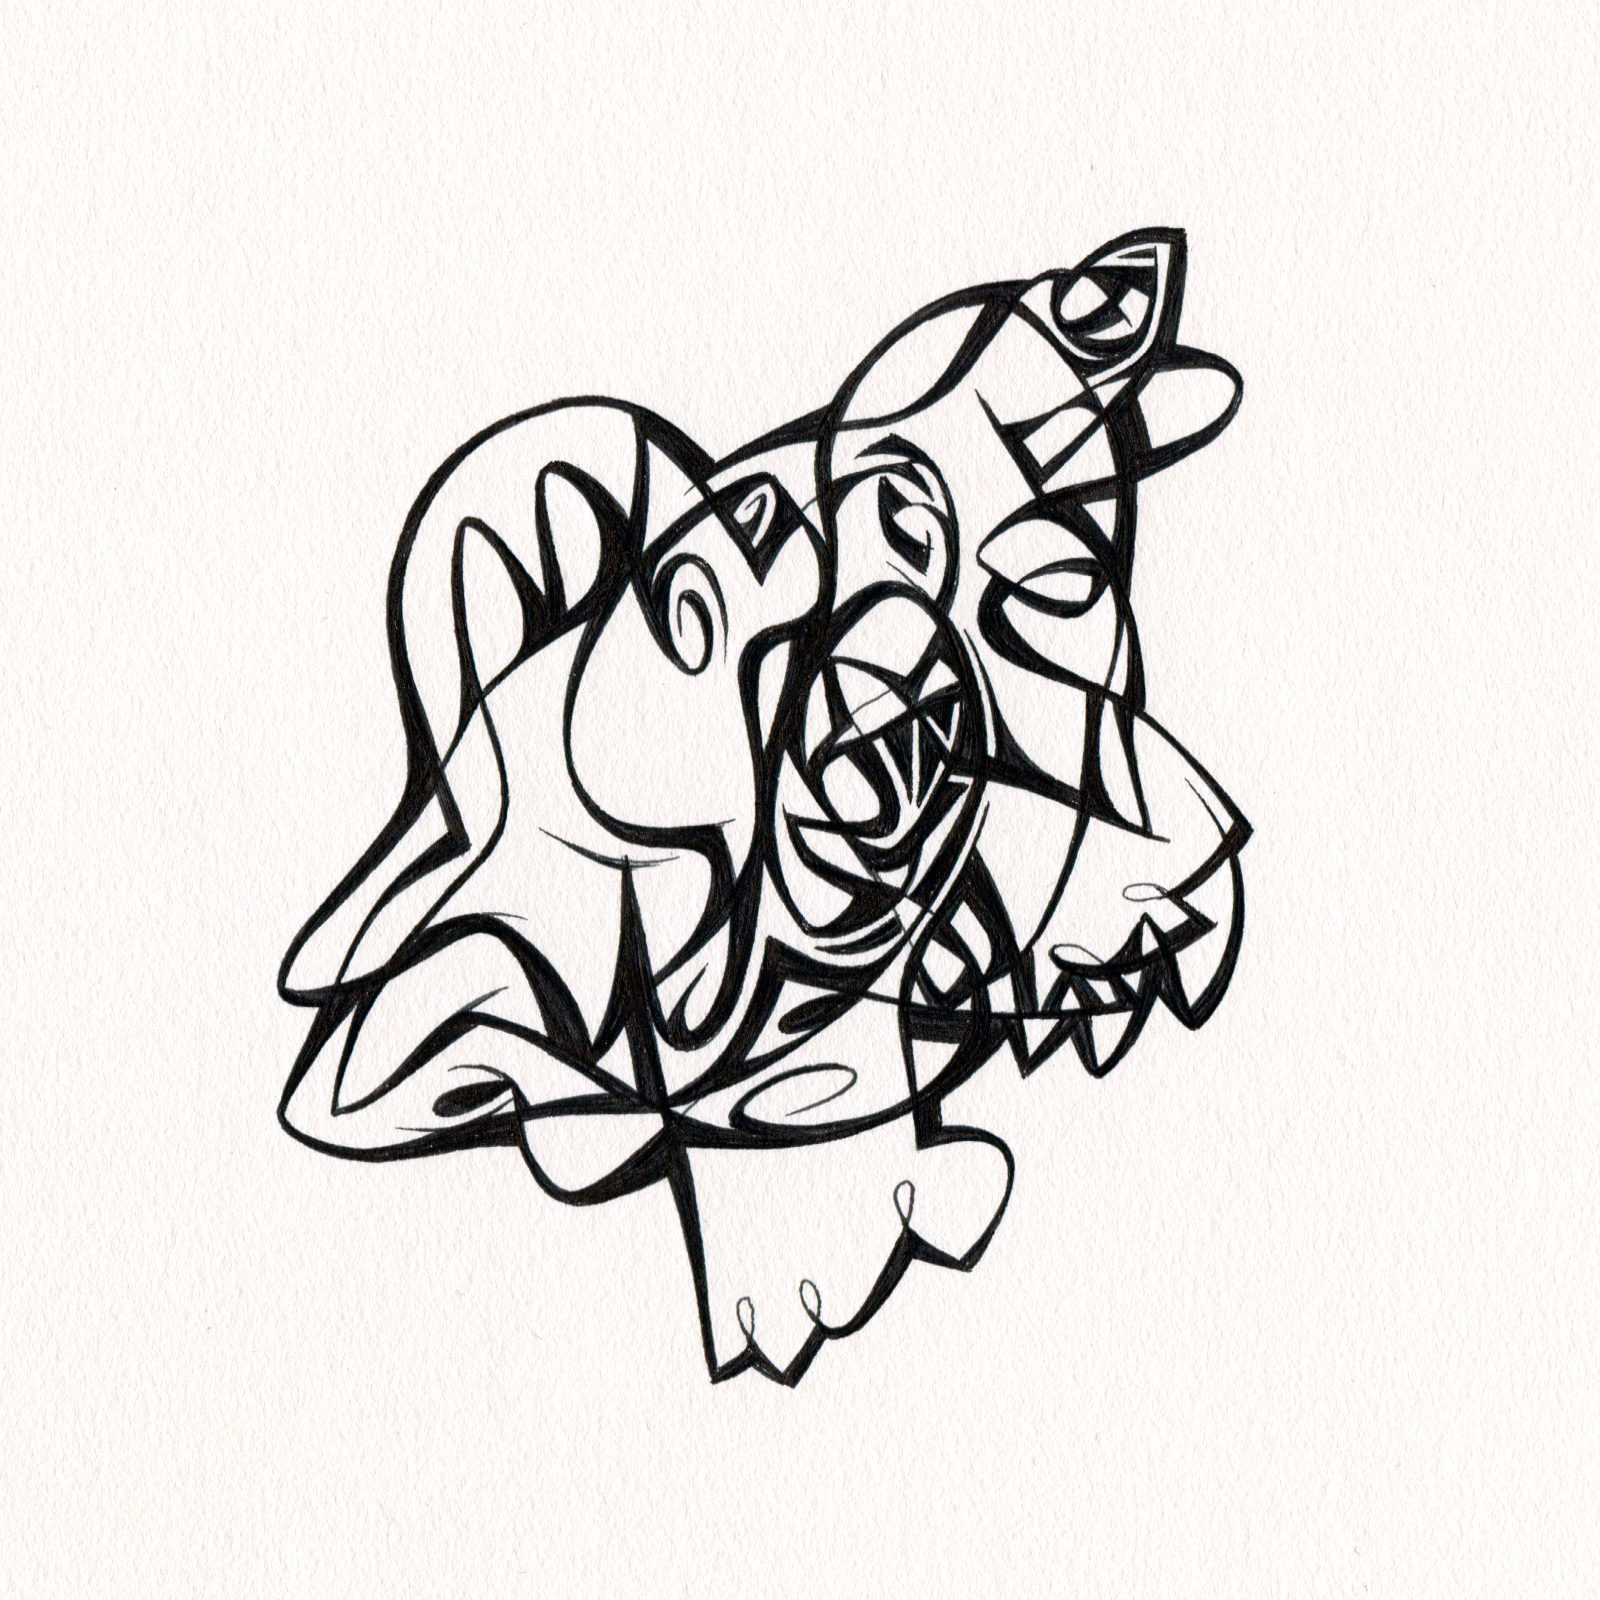 "Untitled Ink Drawing #65 , 2015. Ink on paper. Approximately 5"" x 5""."